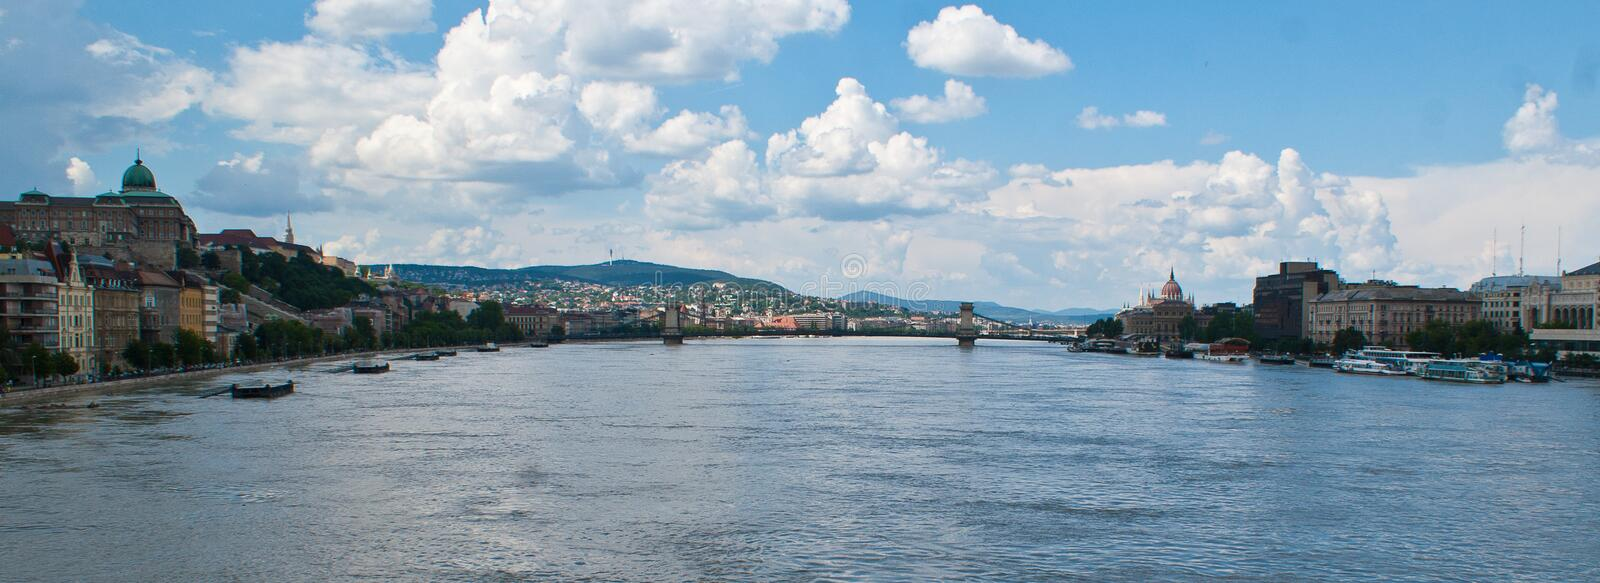 Danube flood in Budapest royalty free stock photo